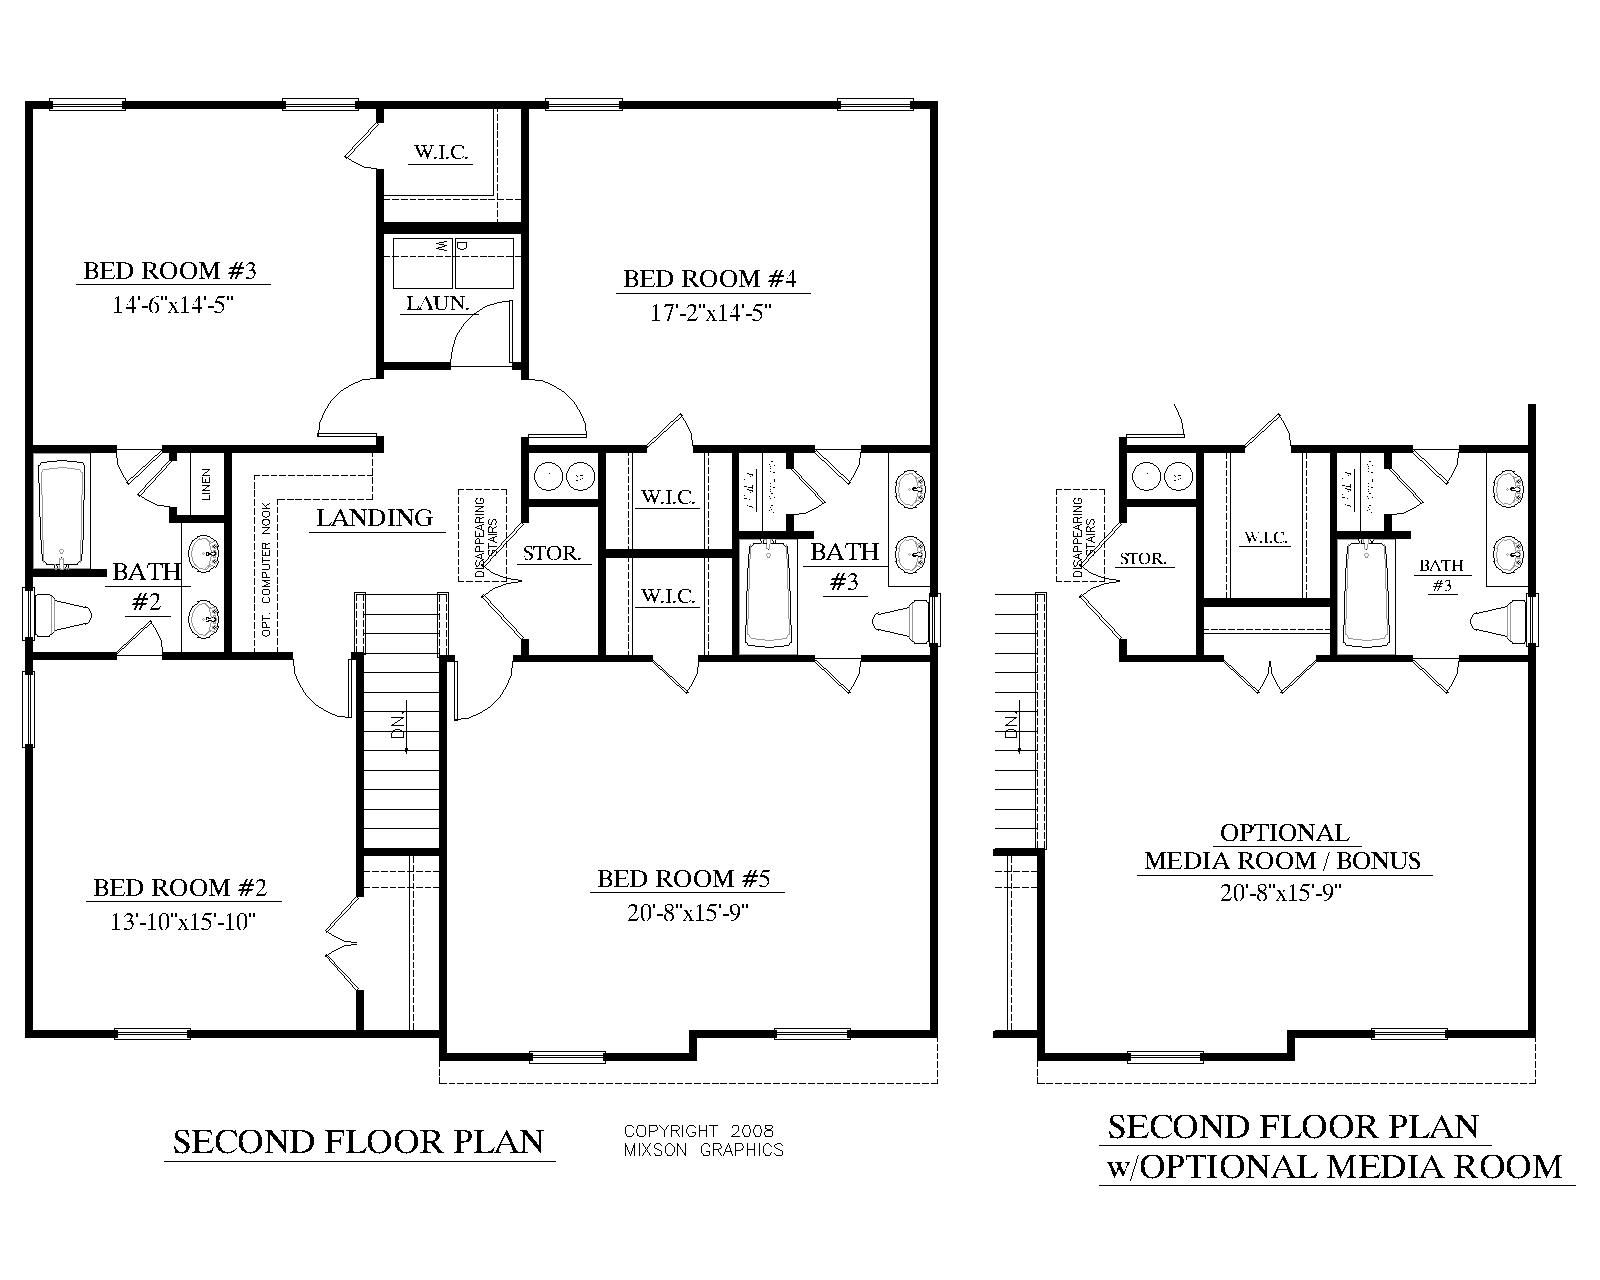 House plan 2691 a mccormick 2nd floor plan 2691 square for 4 bedroom square house plans